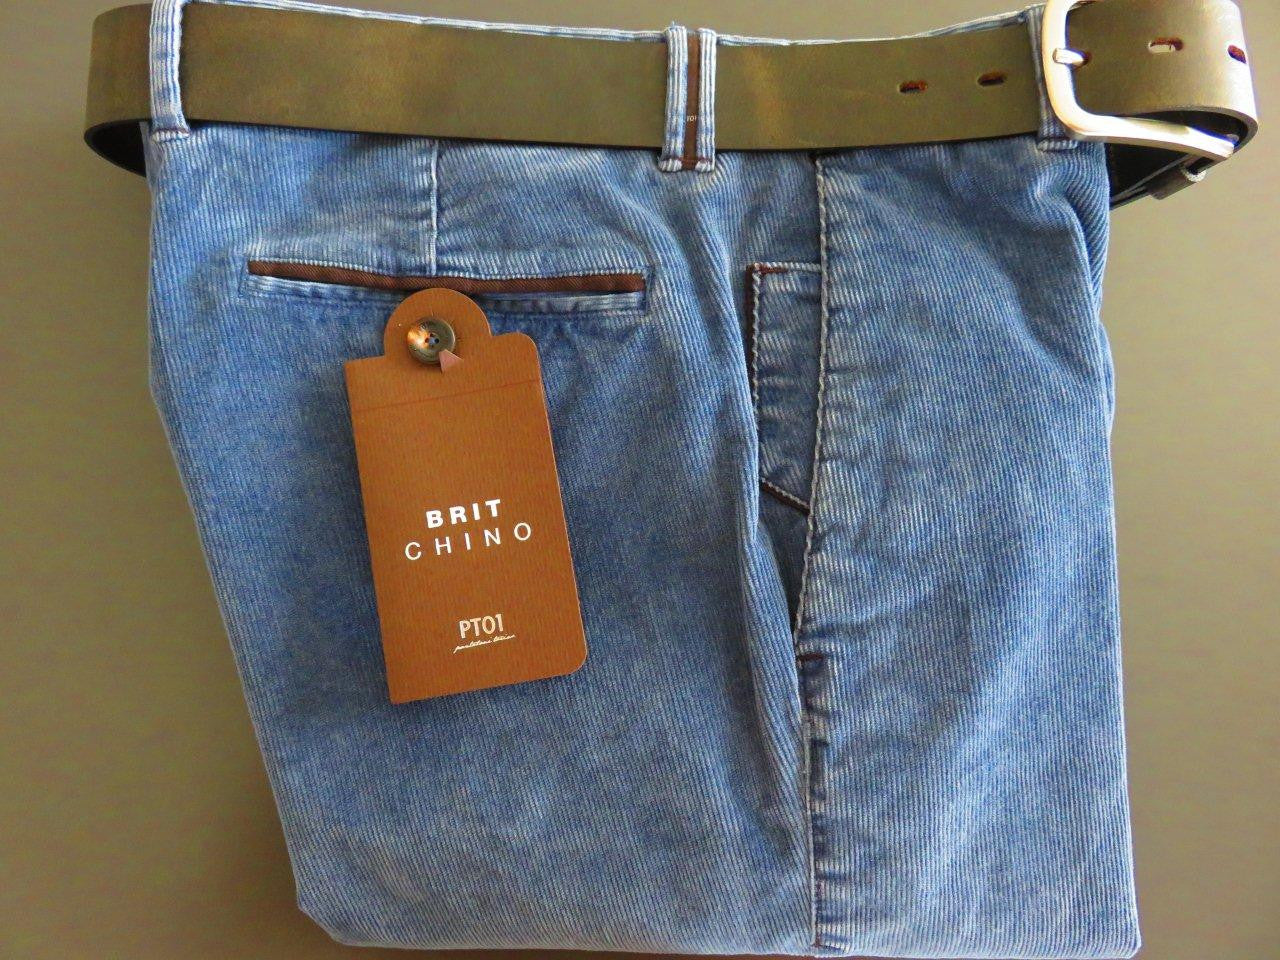 Pantaloni Torino - PT01 Brit Chino with belt